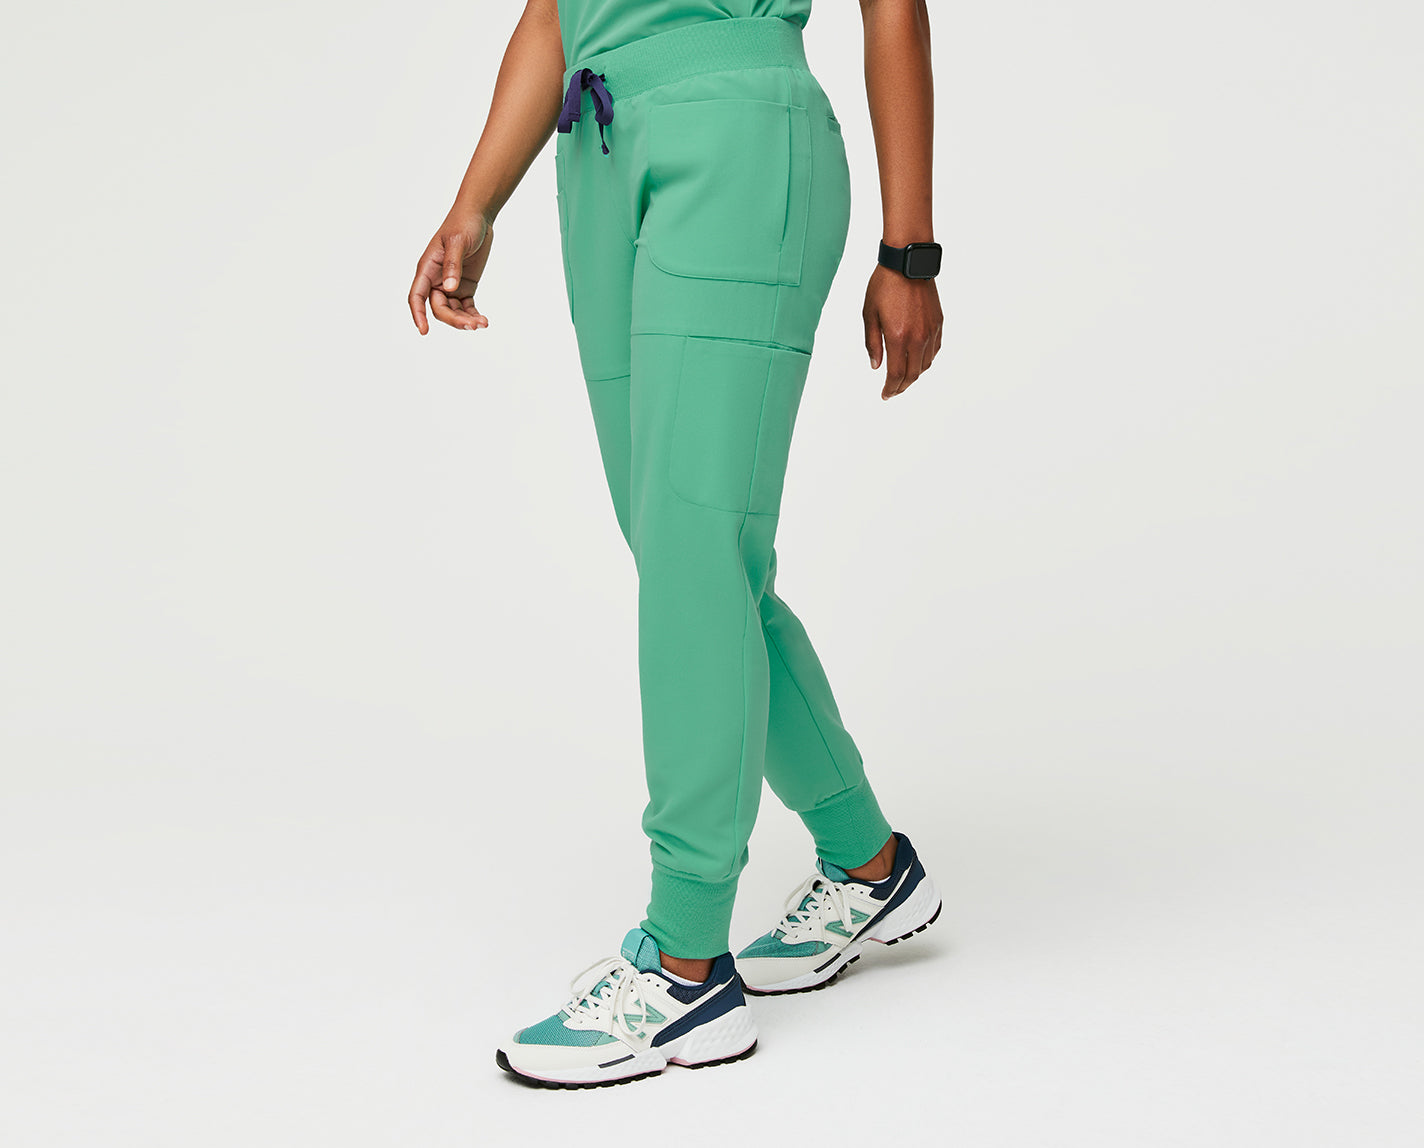 You need a dozen pockets. We've got the solution. With a slim fit, cotton poly rib and waistband and twelve pockets, the Nepal Slim Jogger is your new go-to, on-the-go, getting-it-done pant.